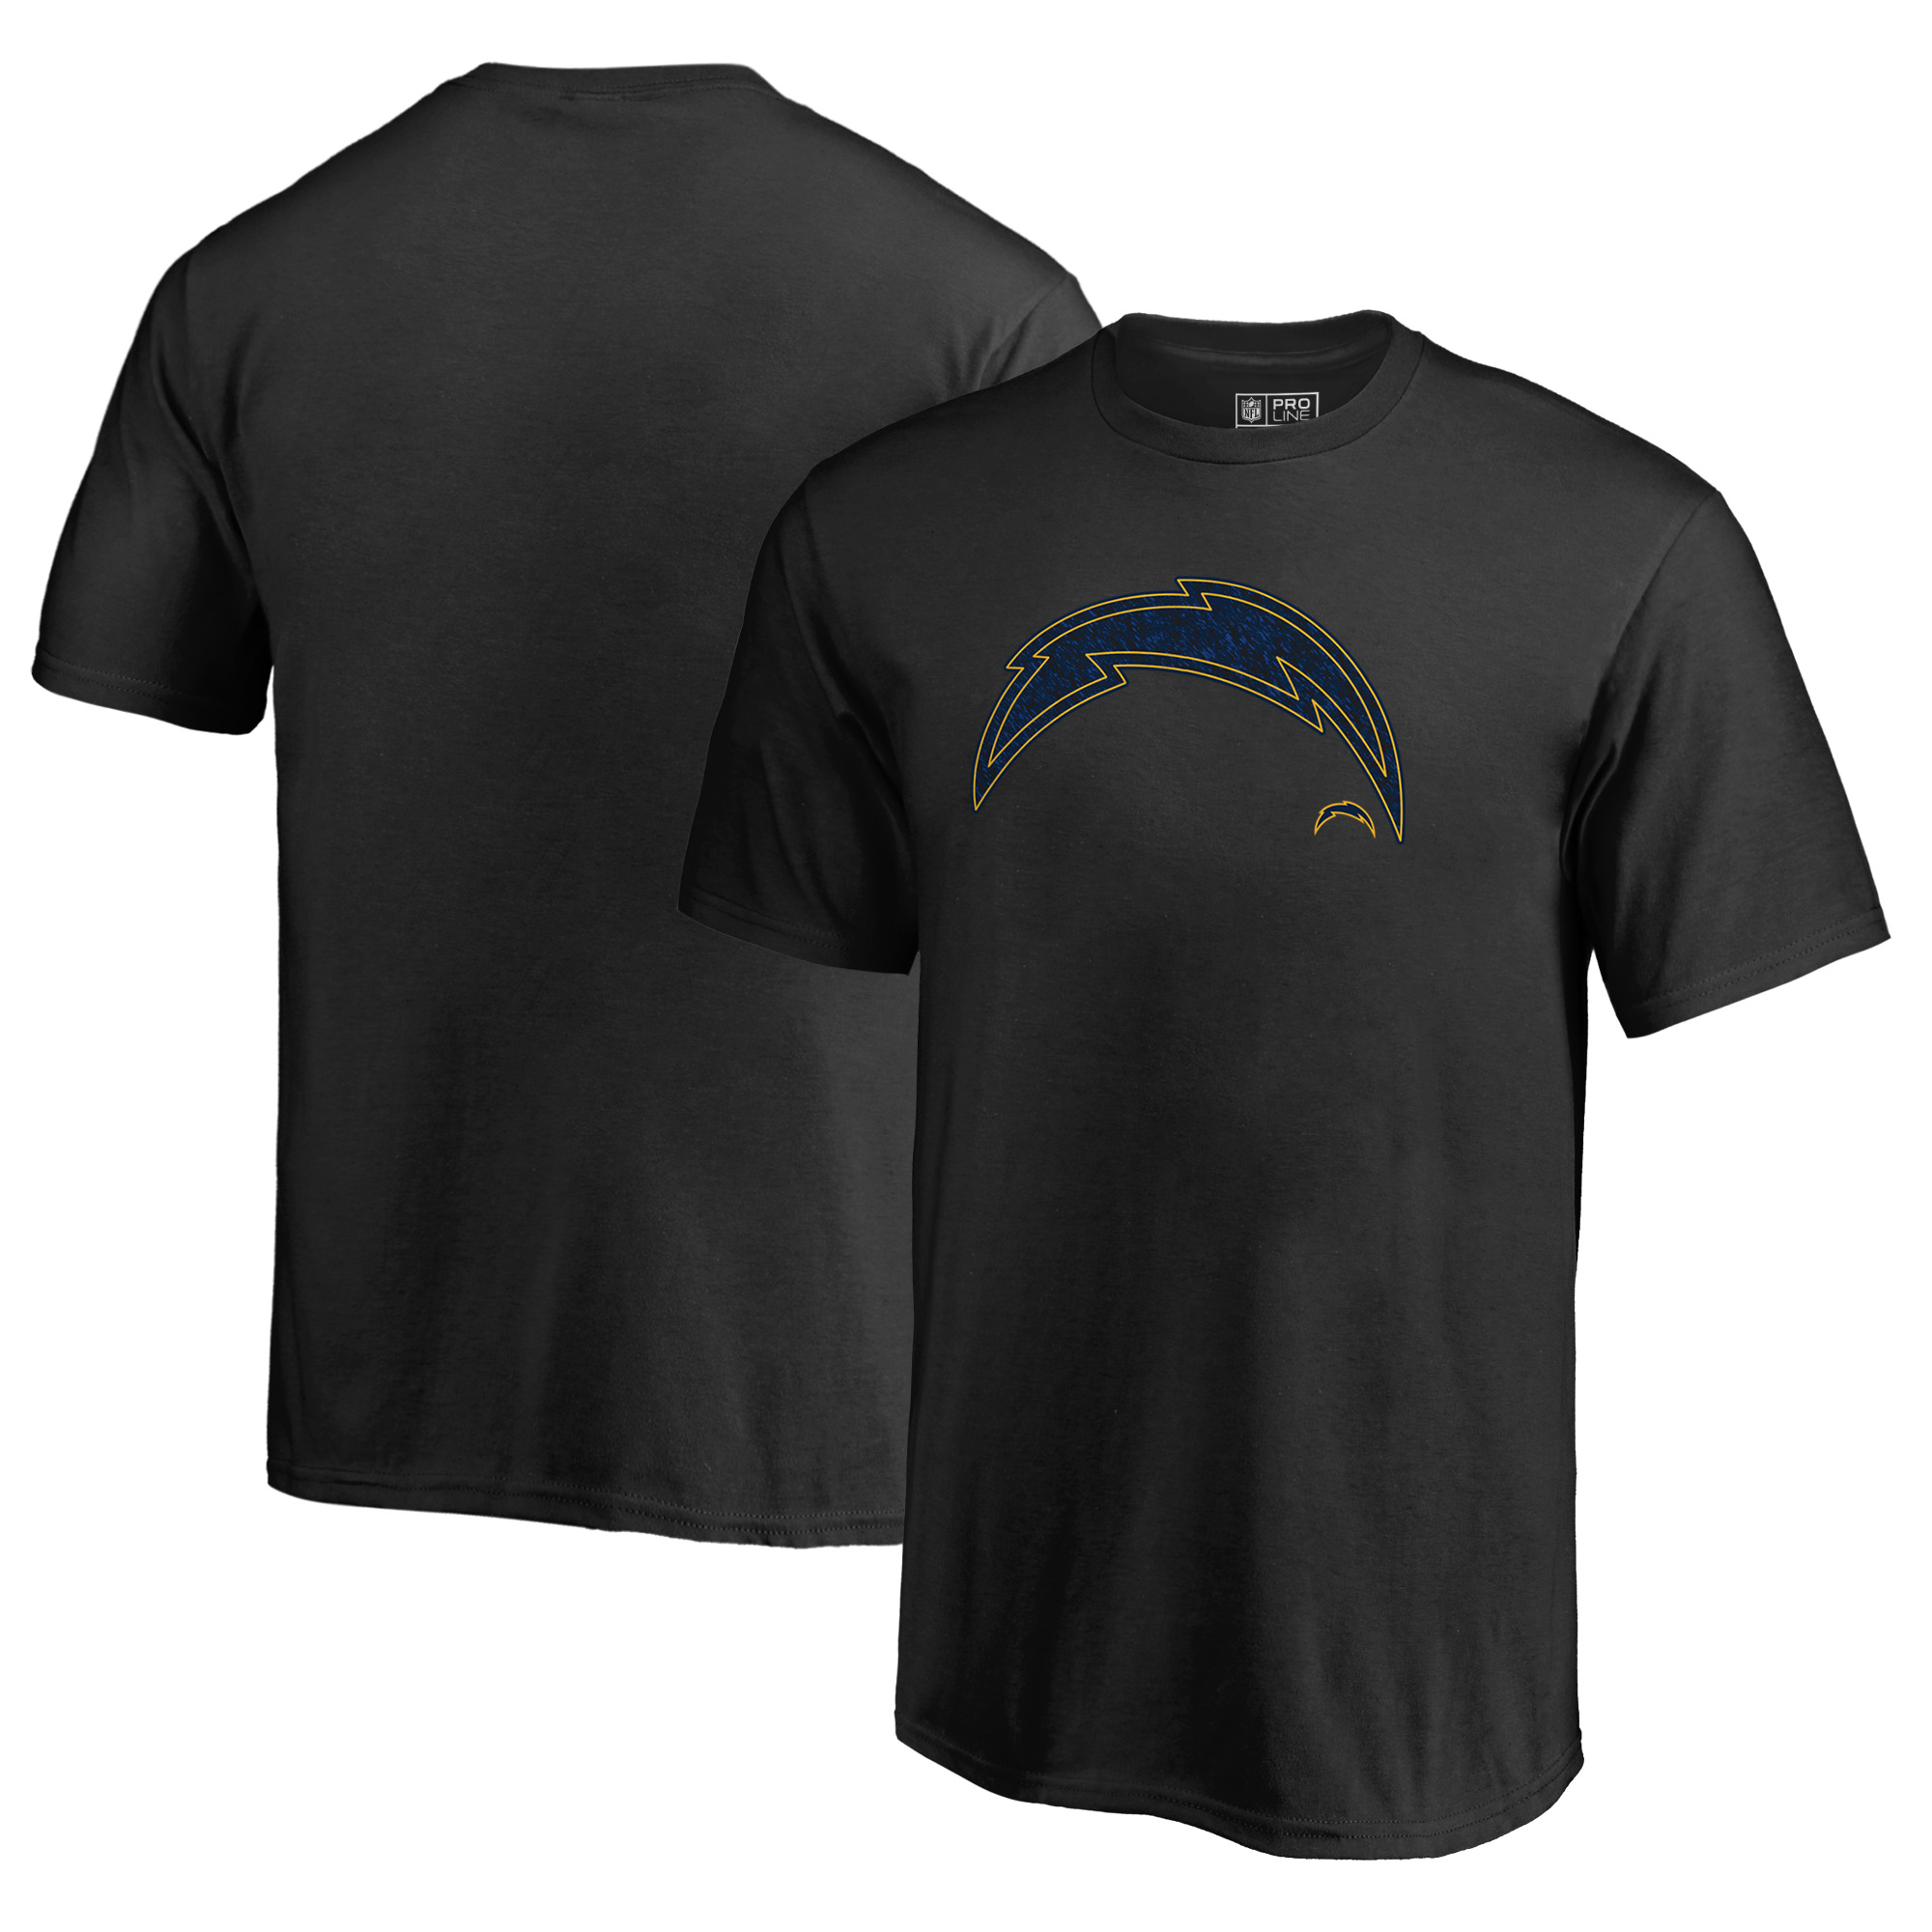 Los Angeles Chargers NFL Pro Line by Fanatics Branded Youth Training Camp Hookup T-Shirt - Black